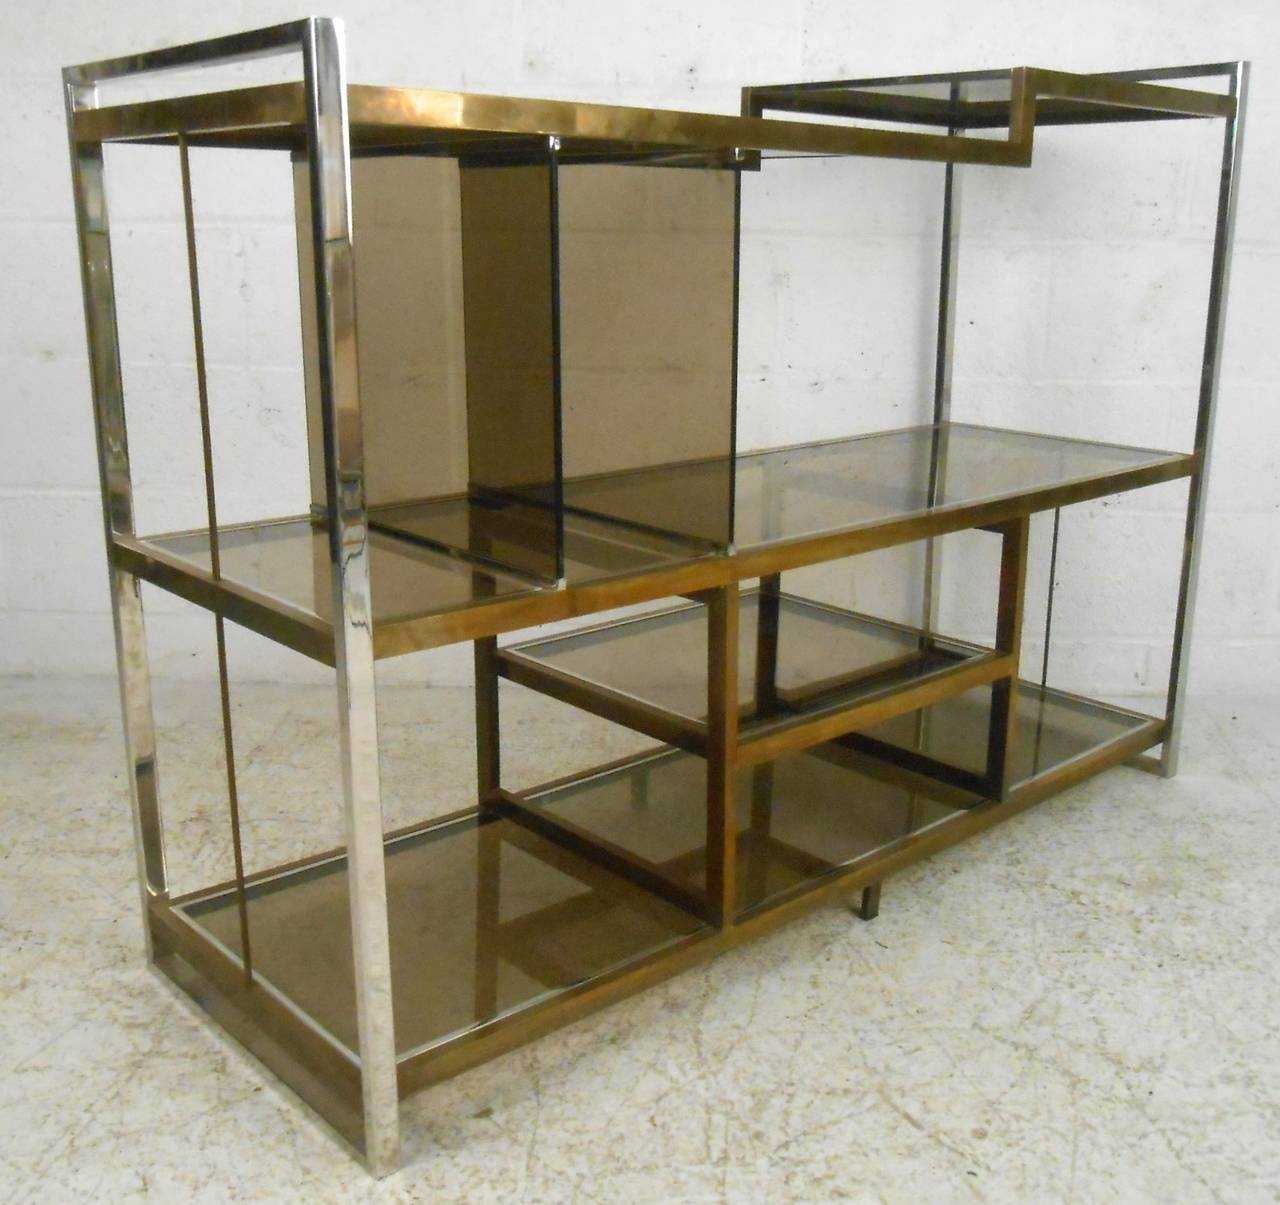 This Unique Low Bookshelf Features Wonderfully Designed Shelves Set In Sturdy Chrome And Brass Frame